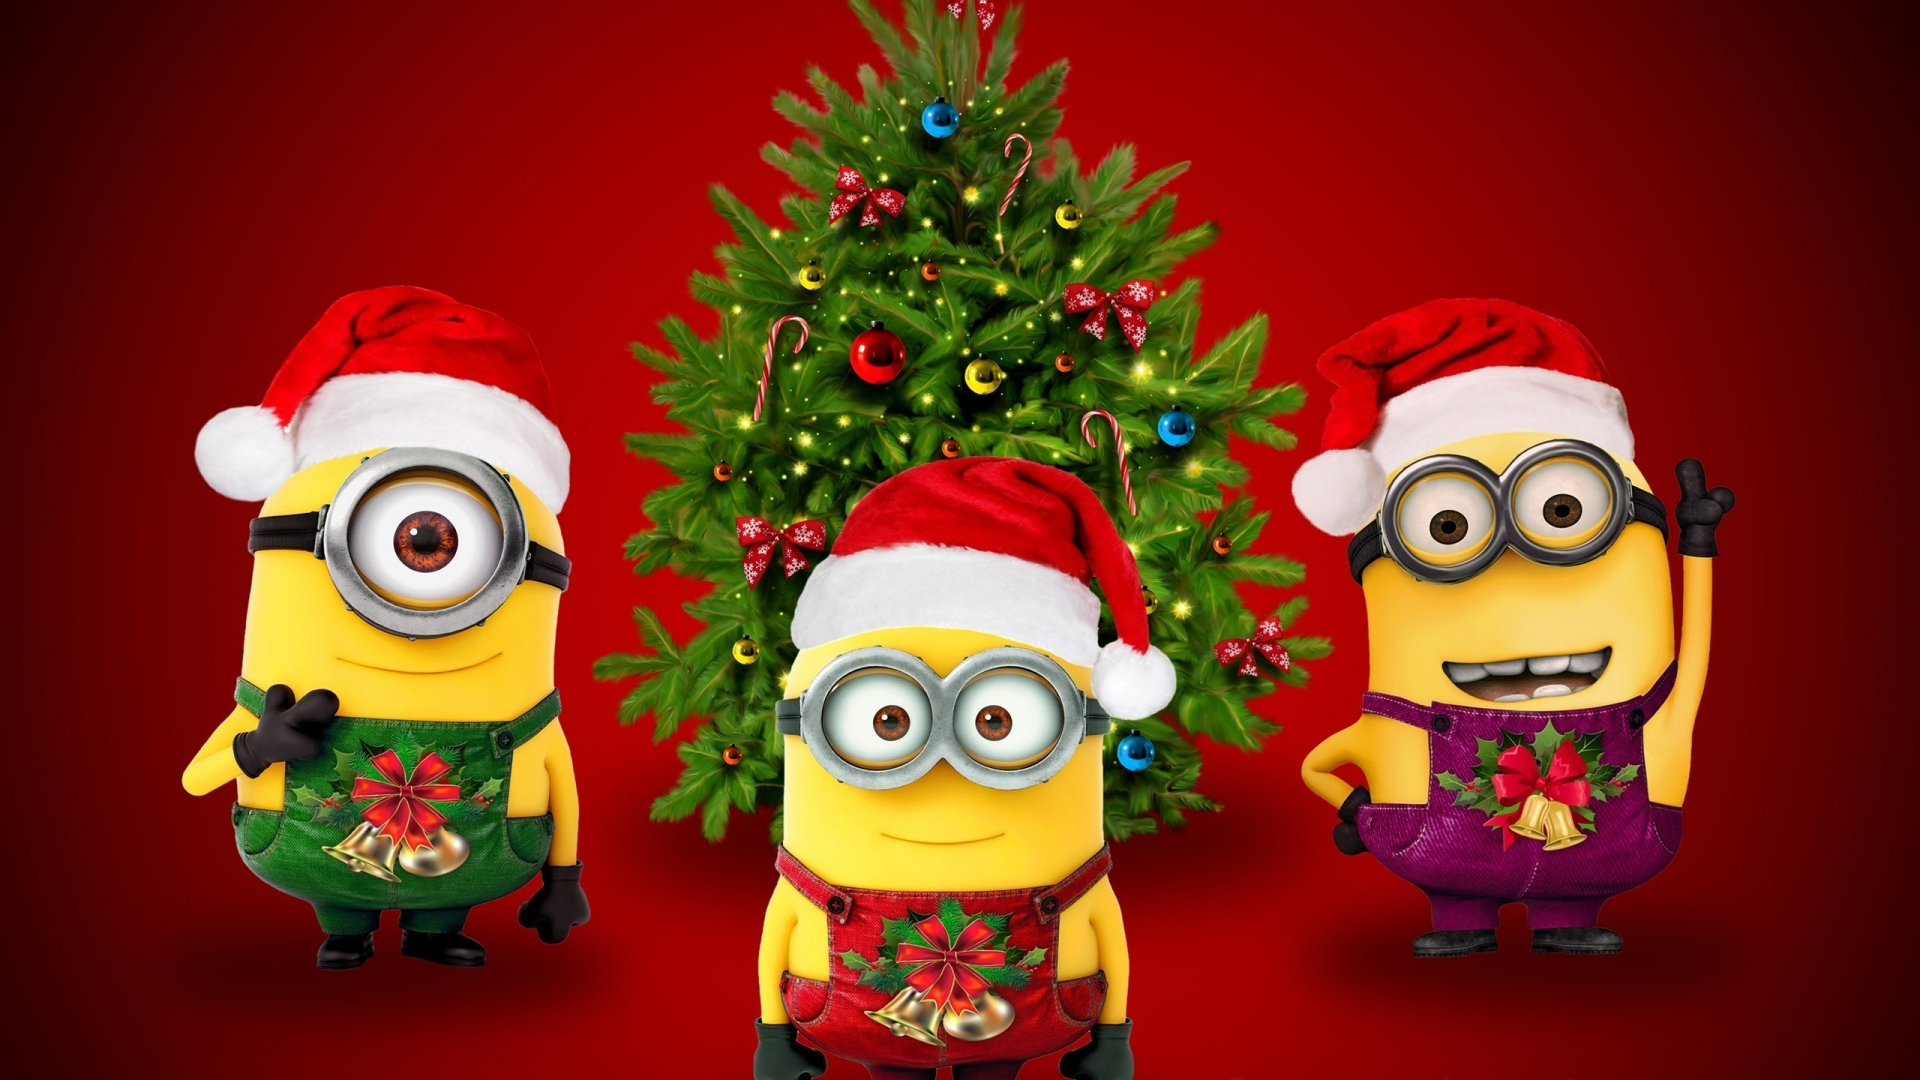 Christmas & Minions for 1920 x 1080 HDTV 1080p resolution